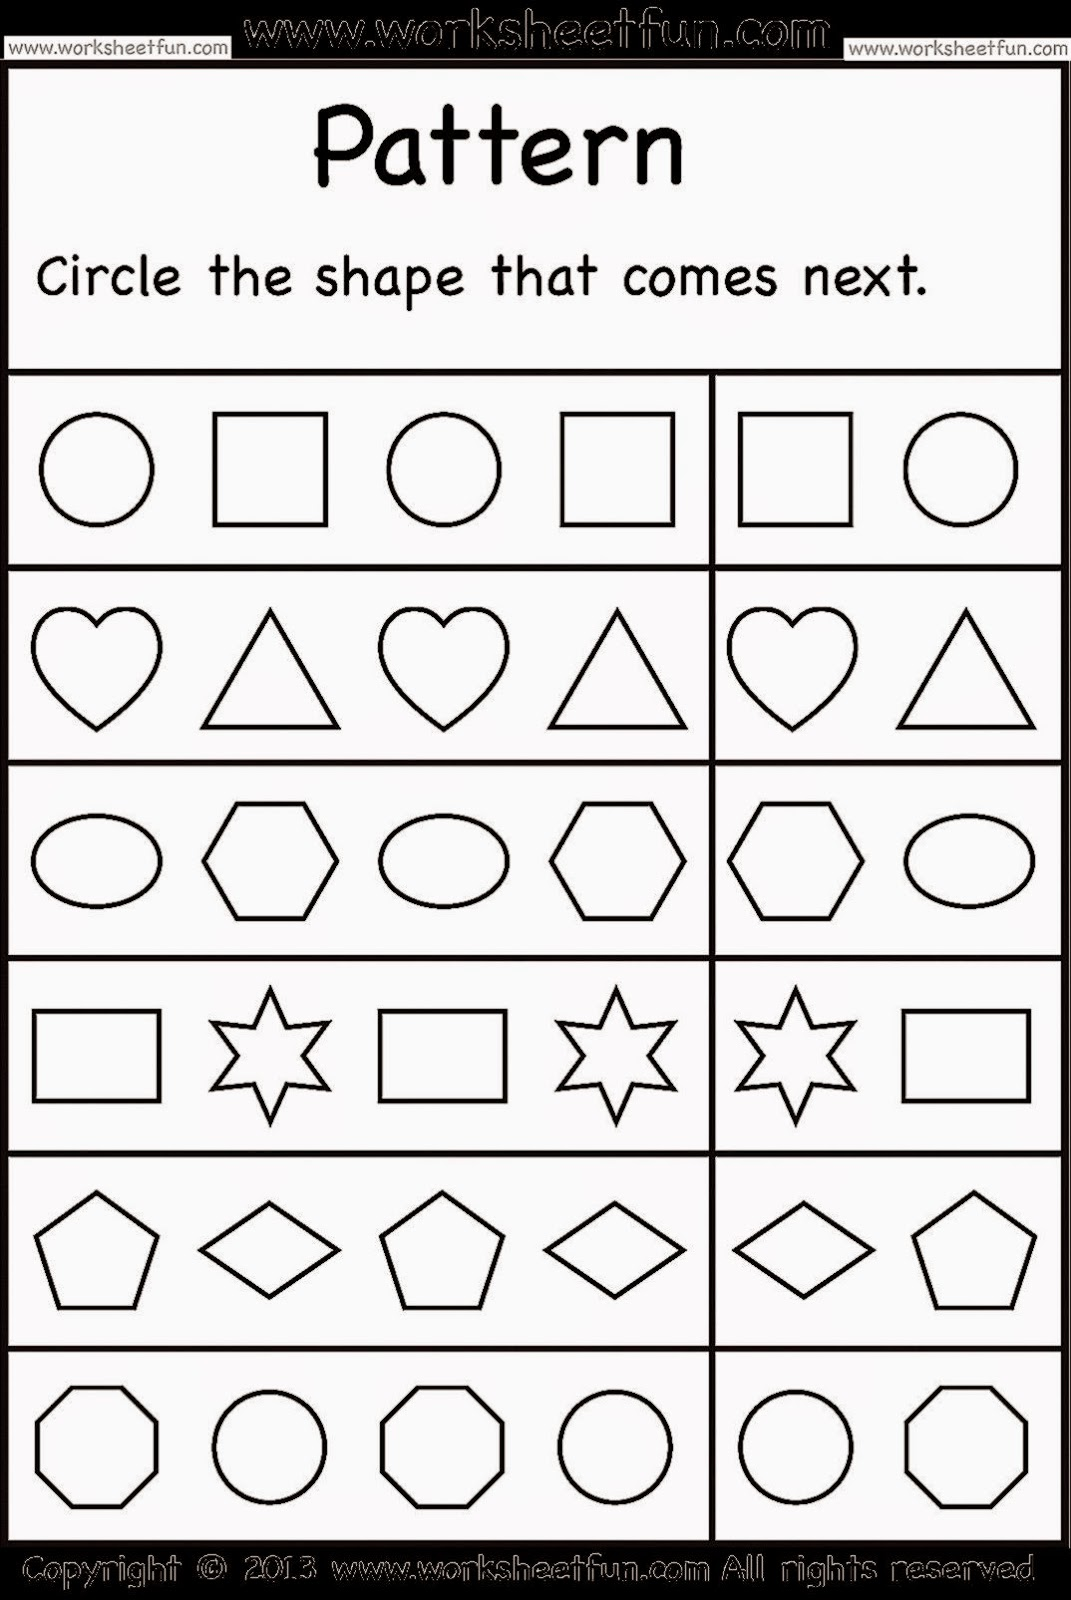 Printable Preschool Worksheets : Kindergarten worksheets free coloring sheet